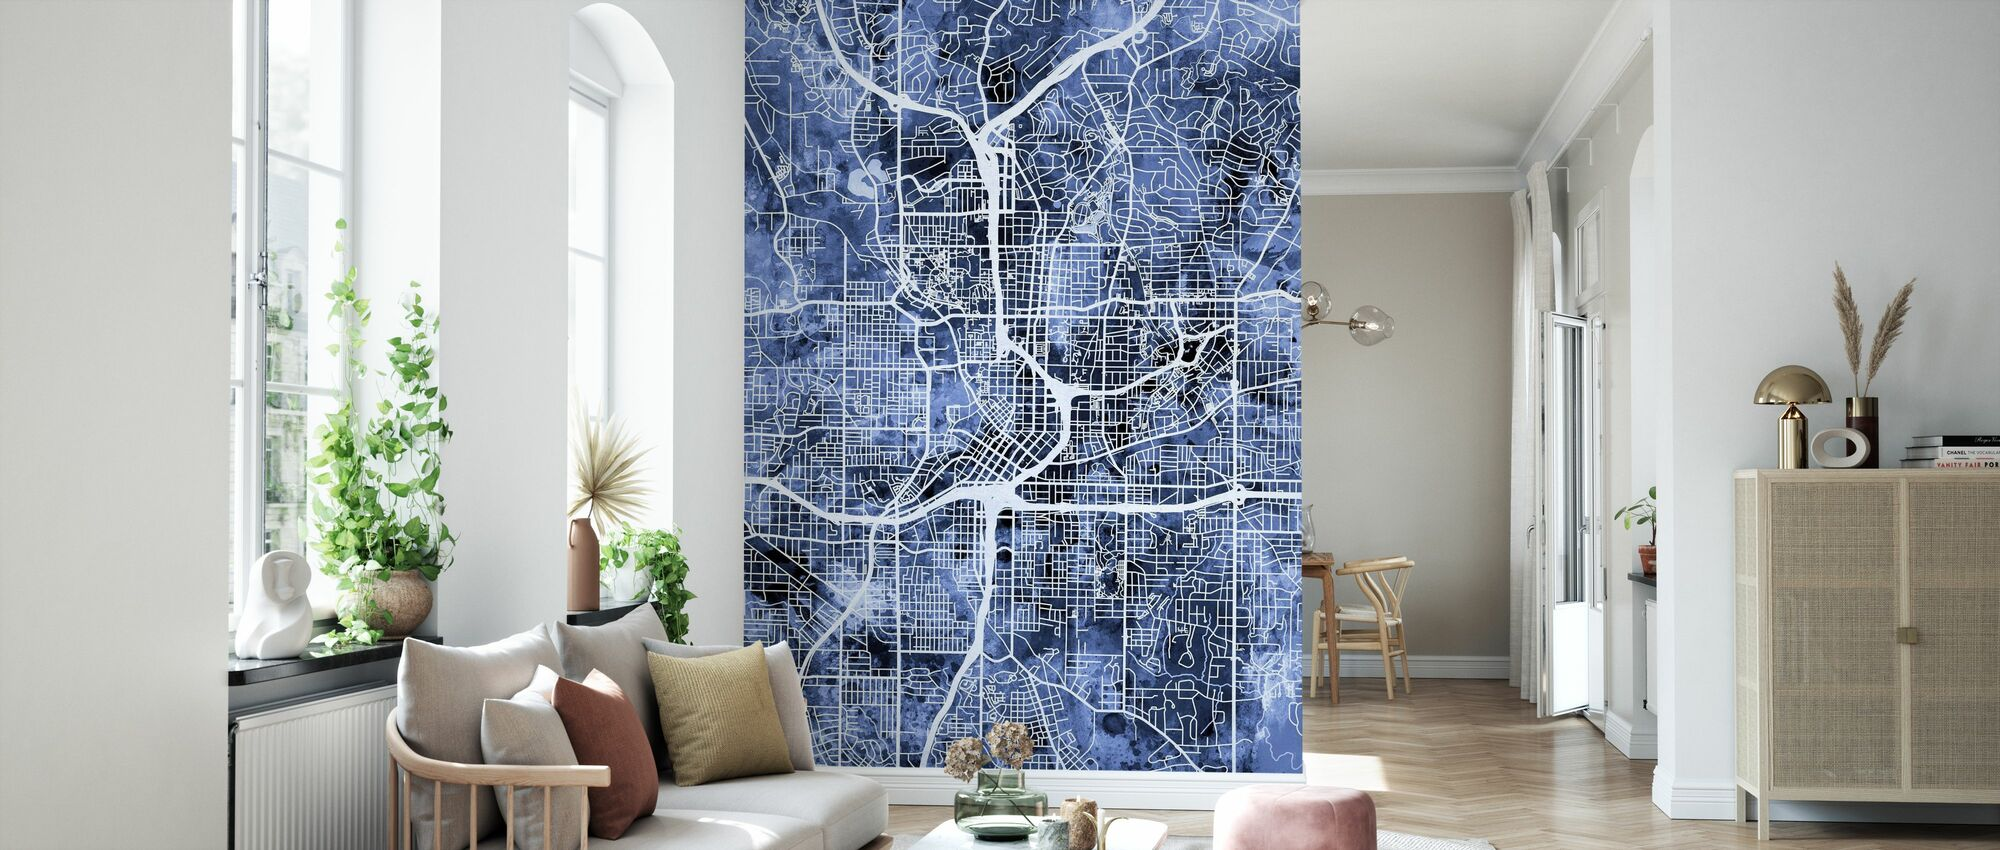 Atlanta Georgia City Map - Wallpaper - Living Room